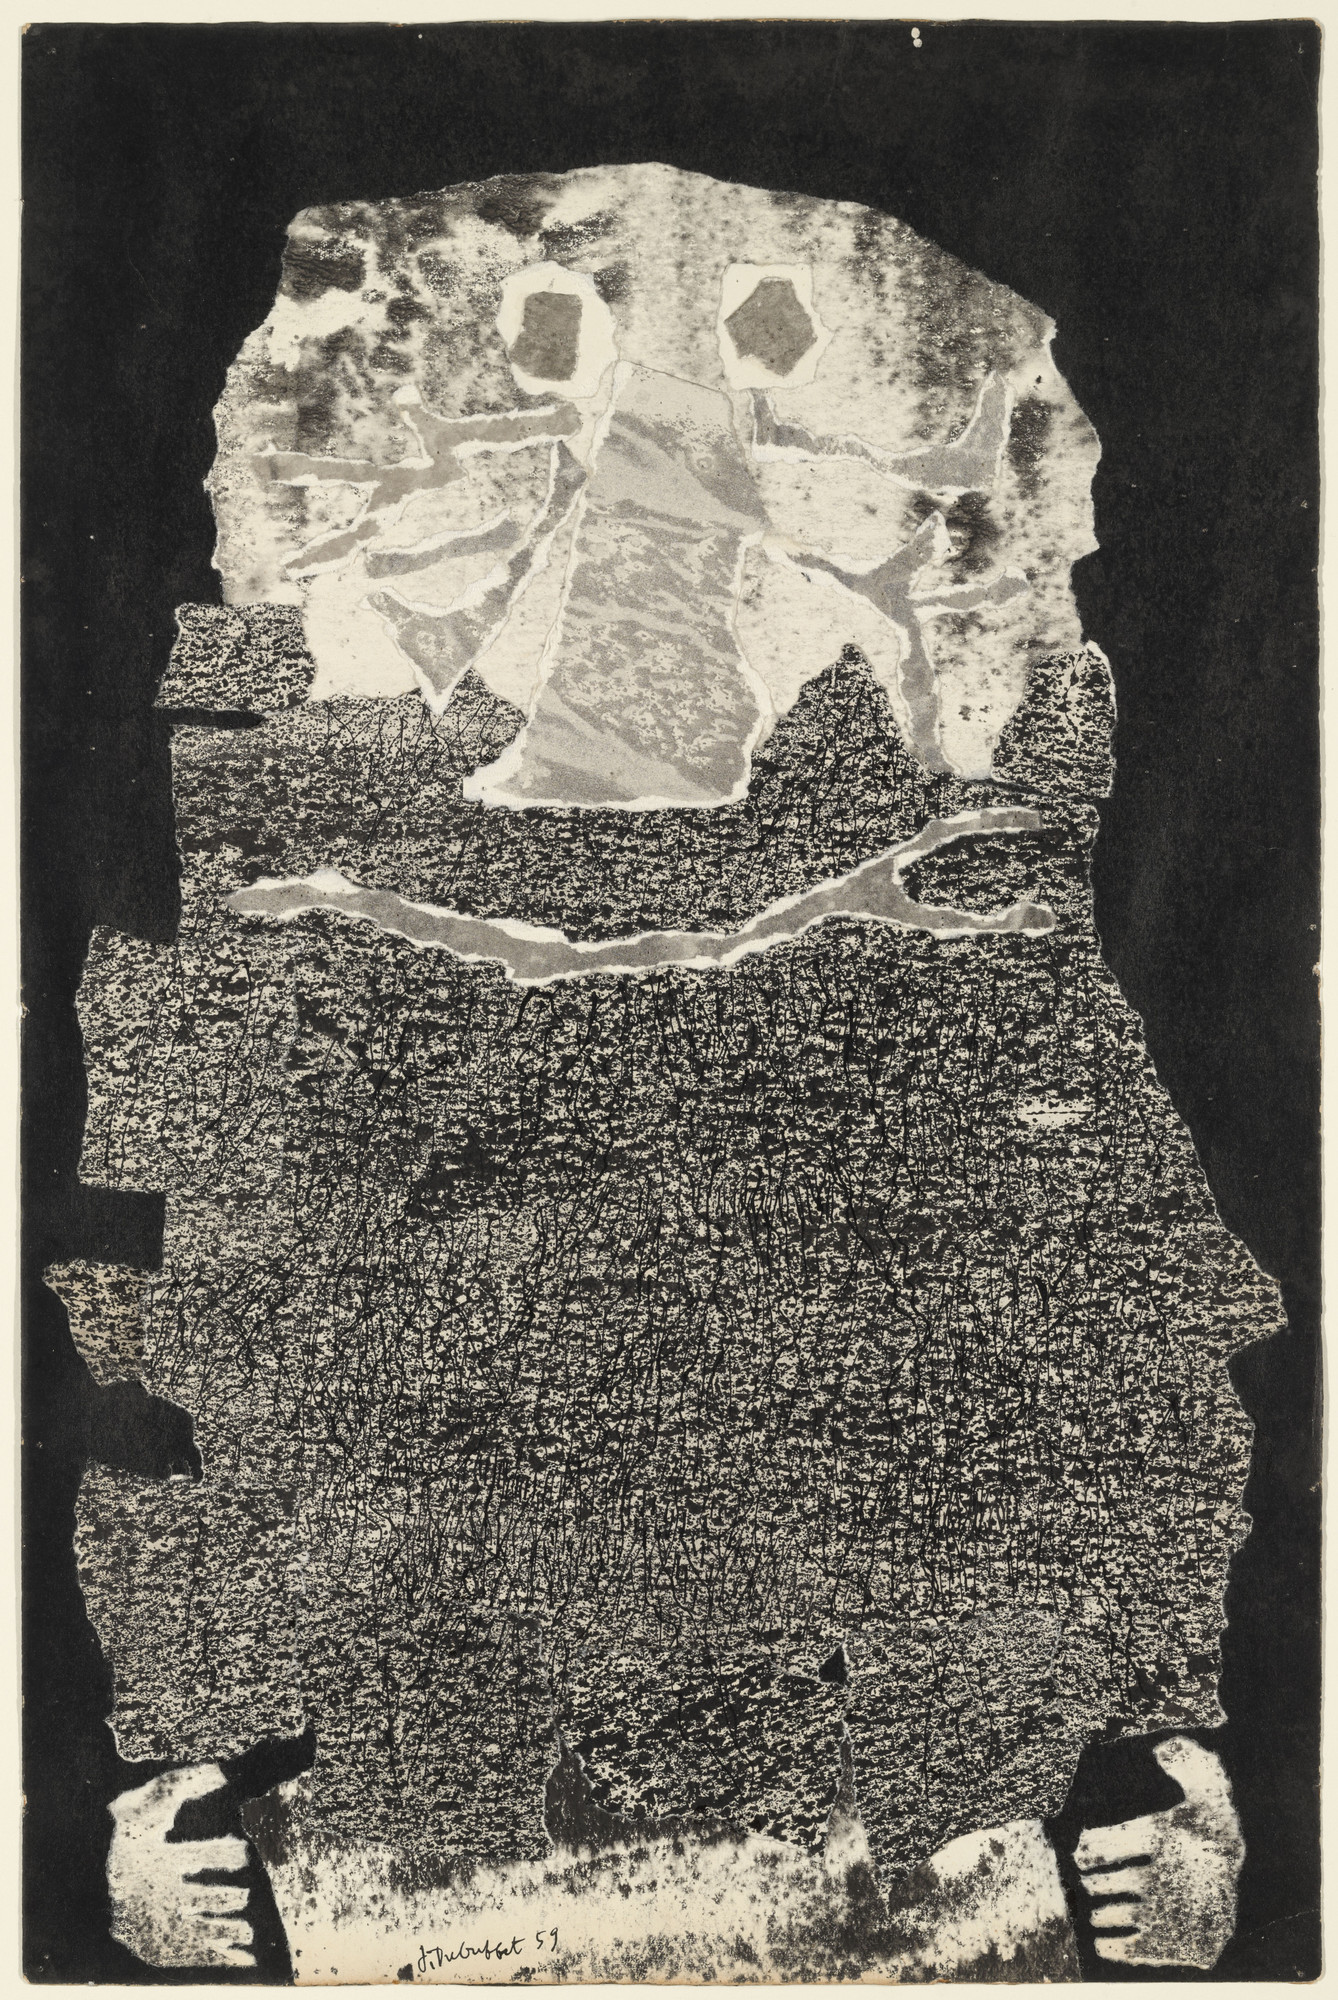 "Jean Dubuffet (French, 1901-1985). Le Vin de barbe. 1959. Torn-and-pasted paper with ink and ink transfer on paper, composition and sheet: 20 x 13 1⁄4"" (50.8 x 33.6 cm). The Museum of Modern Art, New York. Nina and Gordon Bunshaft Bequest, 1995. © 2014 Artists Rights Society (ARS), New York /ADAGP, Paris."